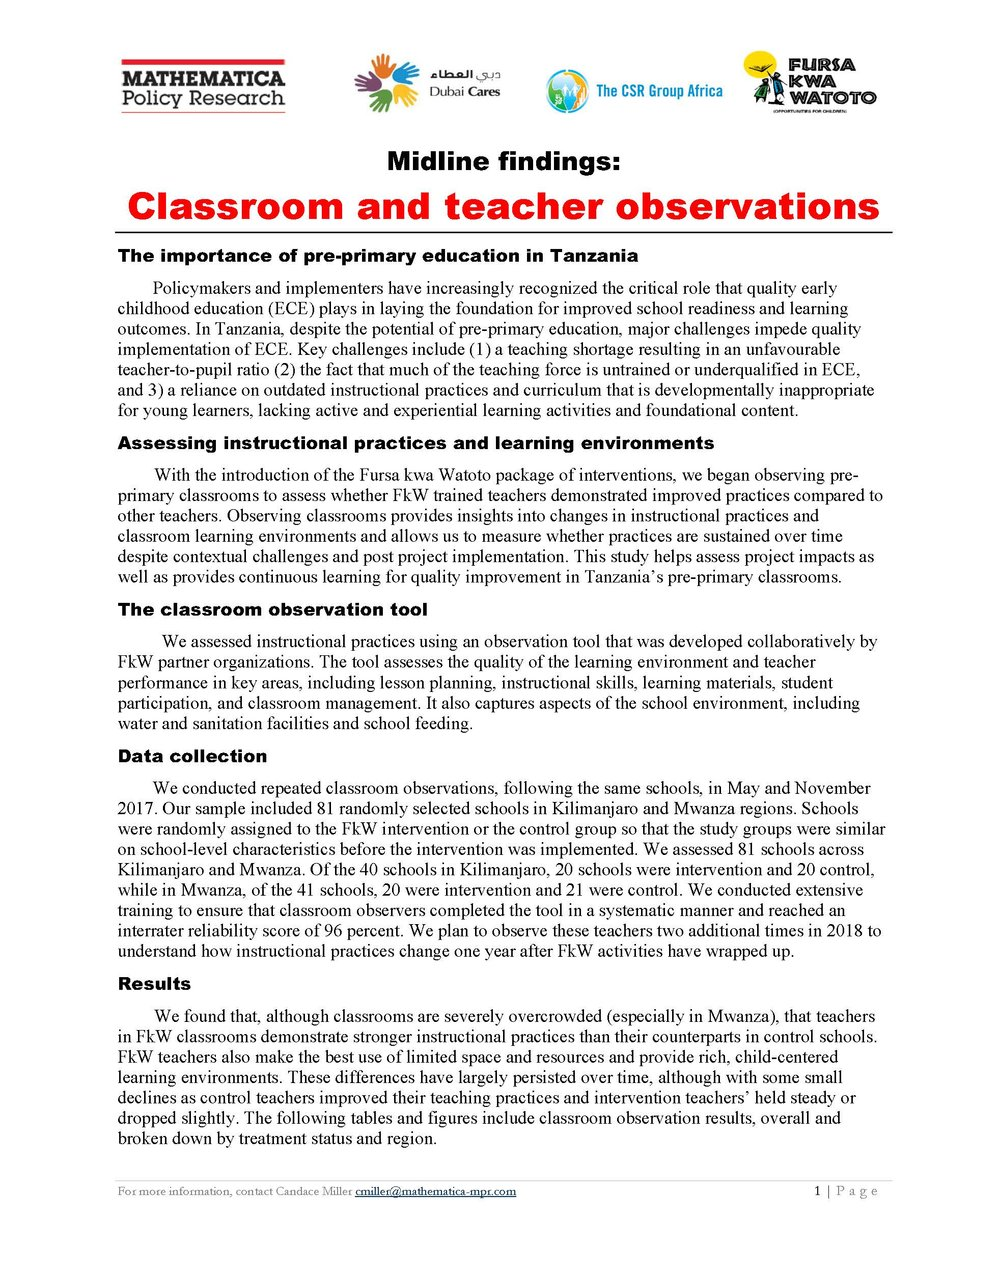 Classroom Observation Results Tables: Learning Agenda